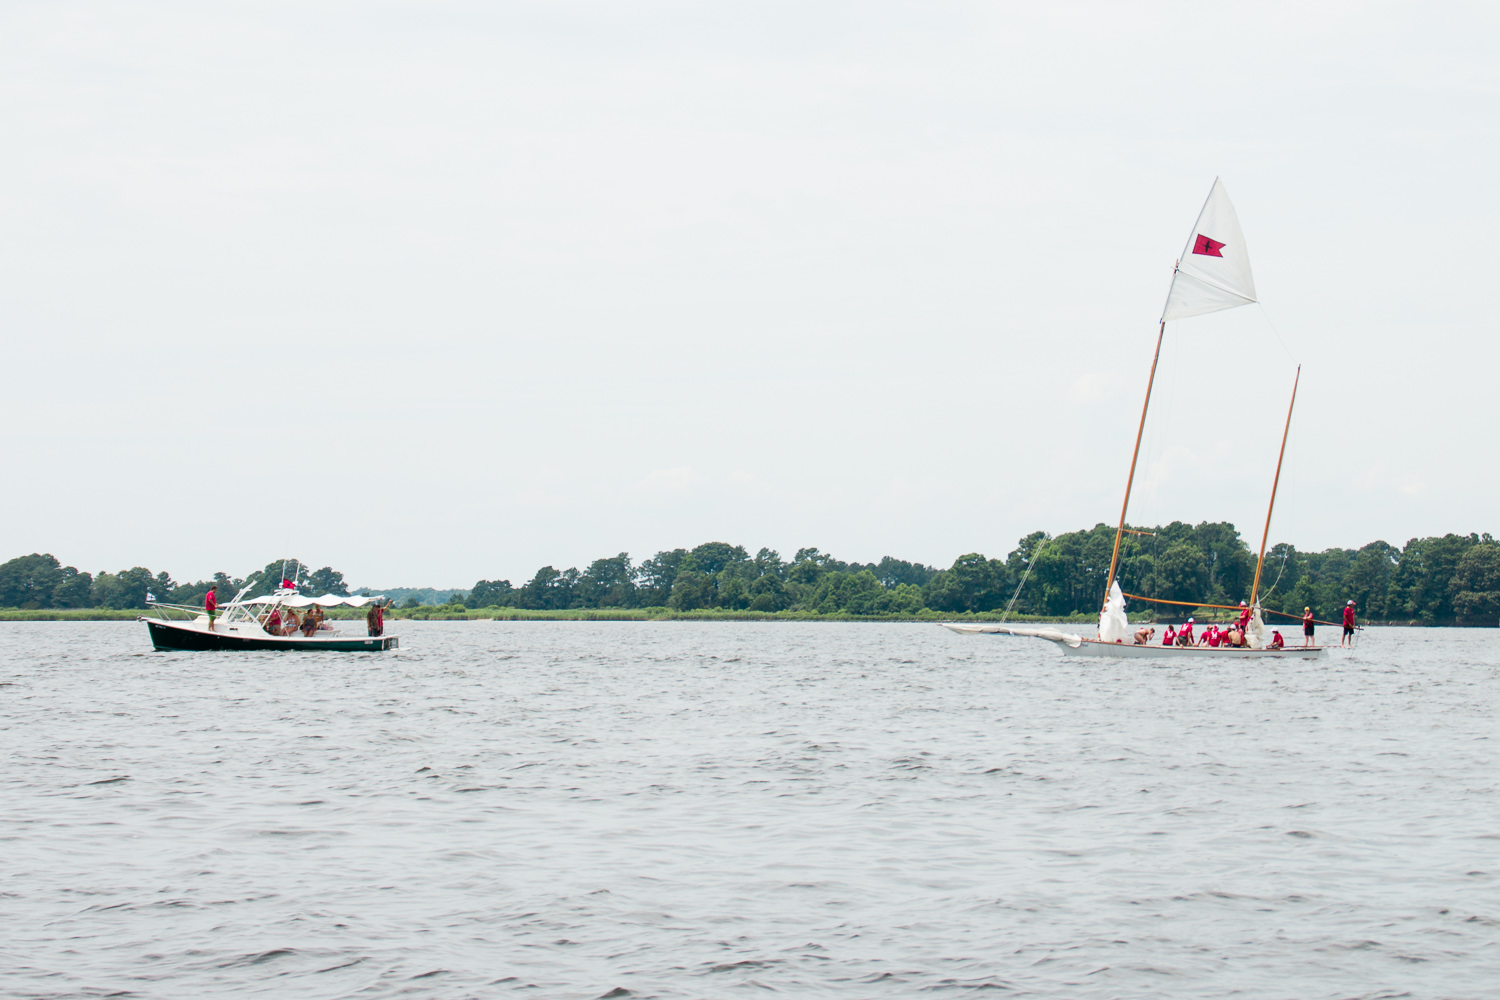 Log-Canoe-Race-at-Rock-Hall-Yacht-Club-July-2016-ss-1.jpg